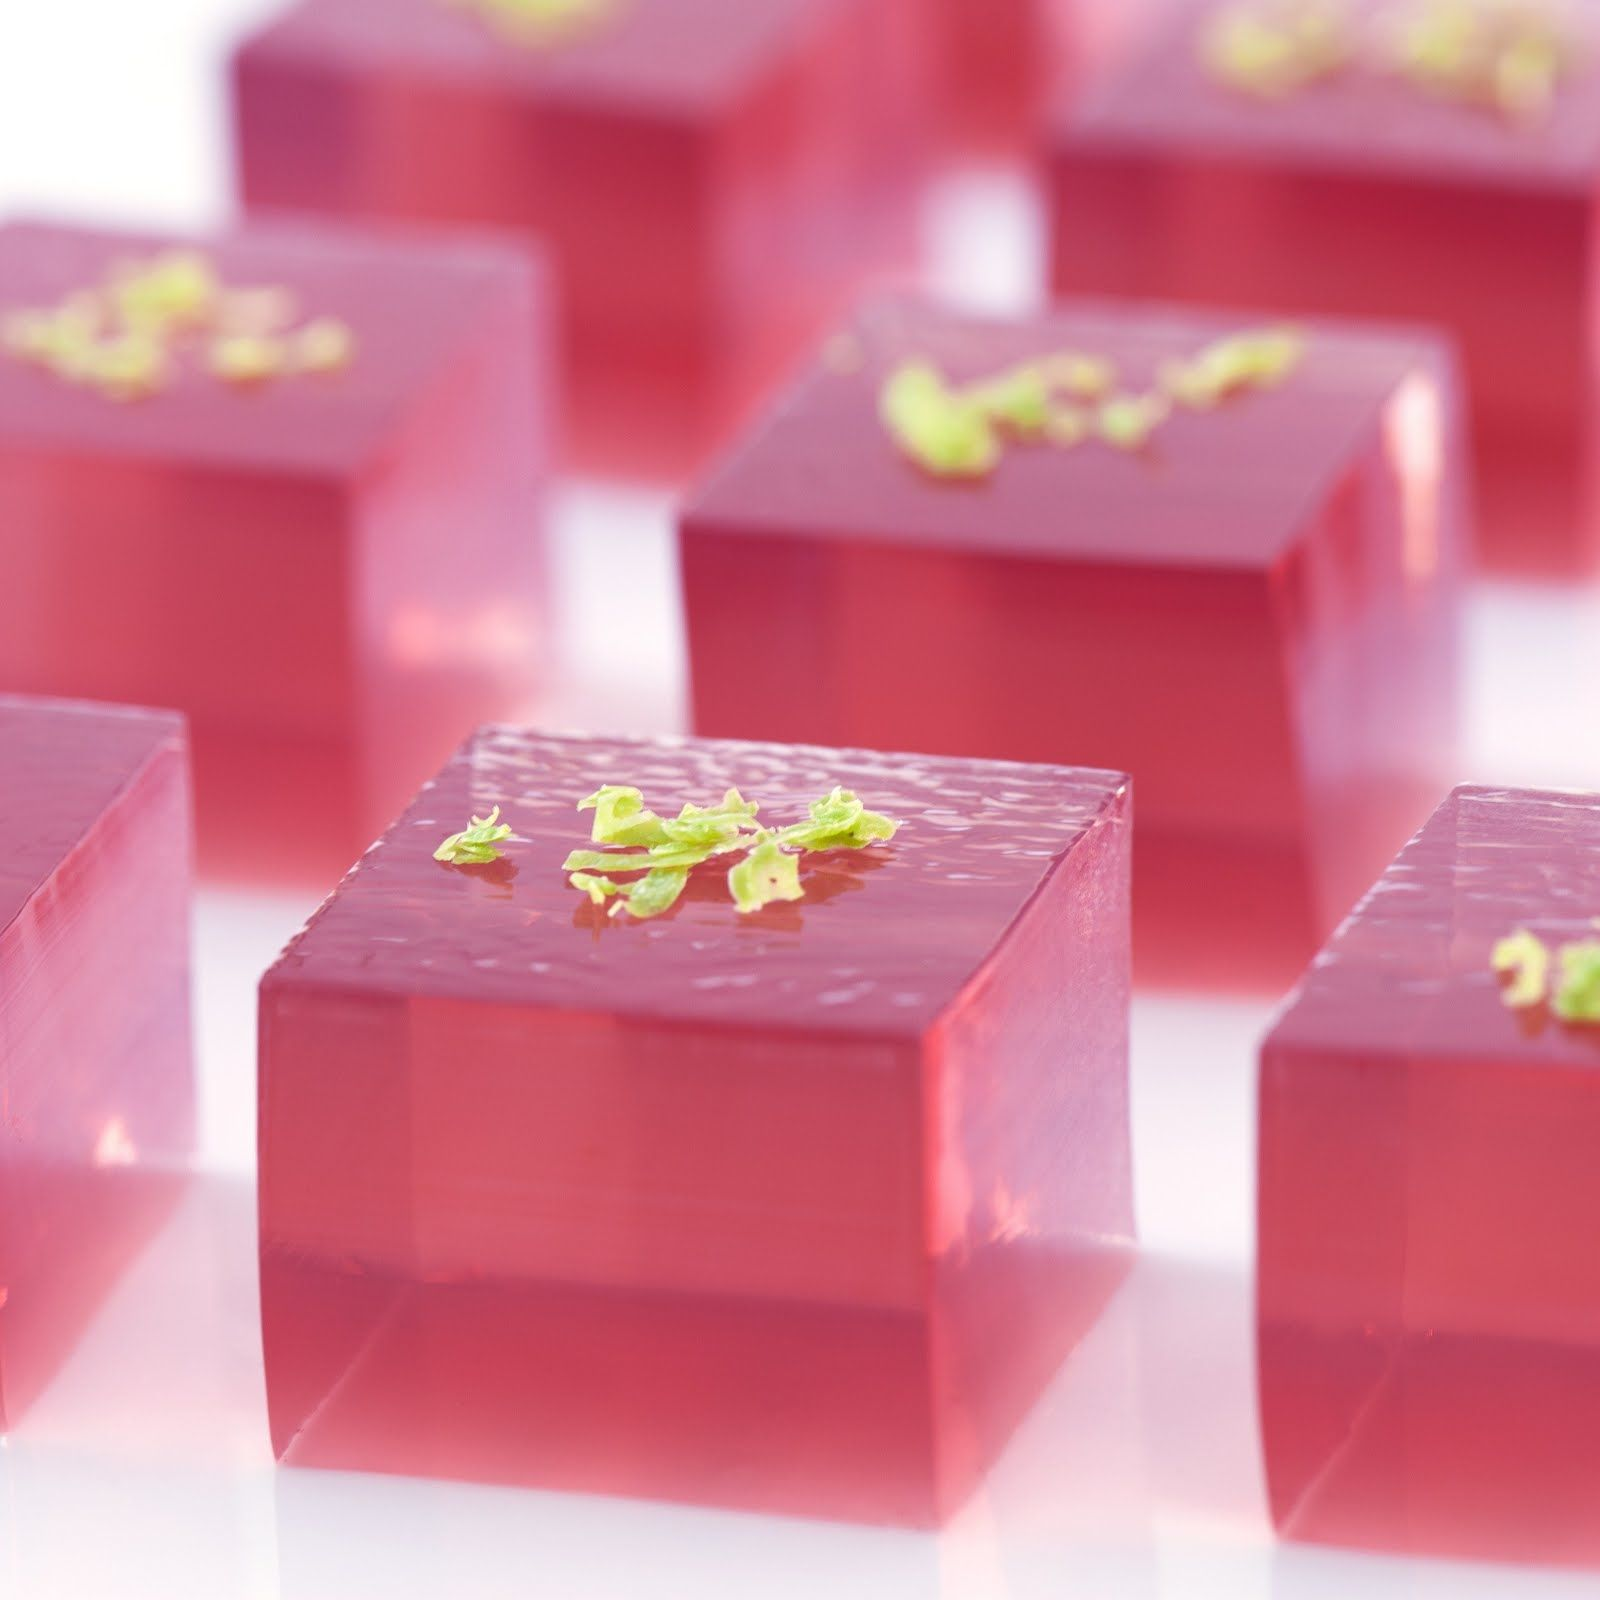 #so65 #food design  Cosmopolitan jelly-shot (Cranberry juice, Orange flavored vodka, Grand Marnier or Cointreau, Roses Lime)